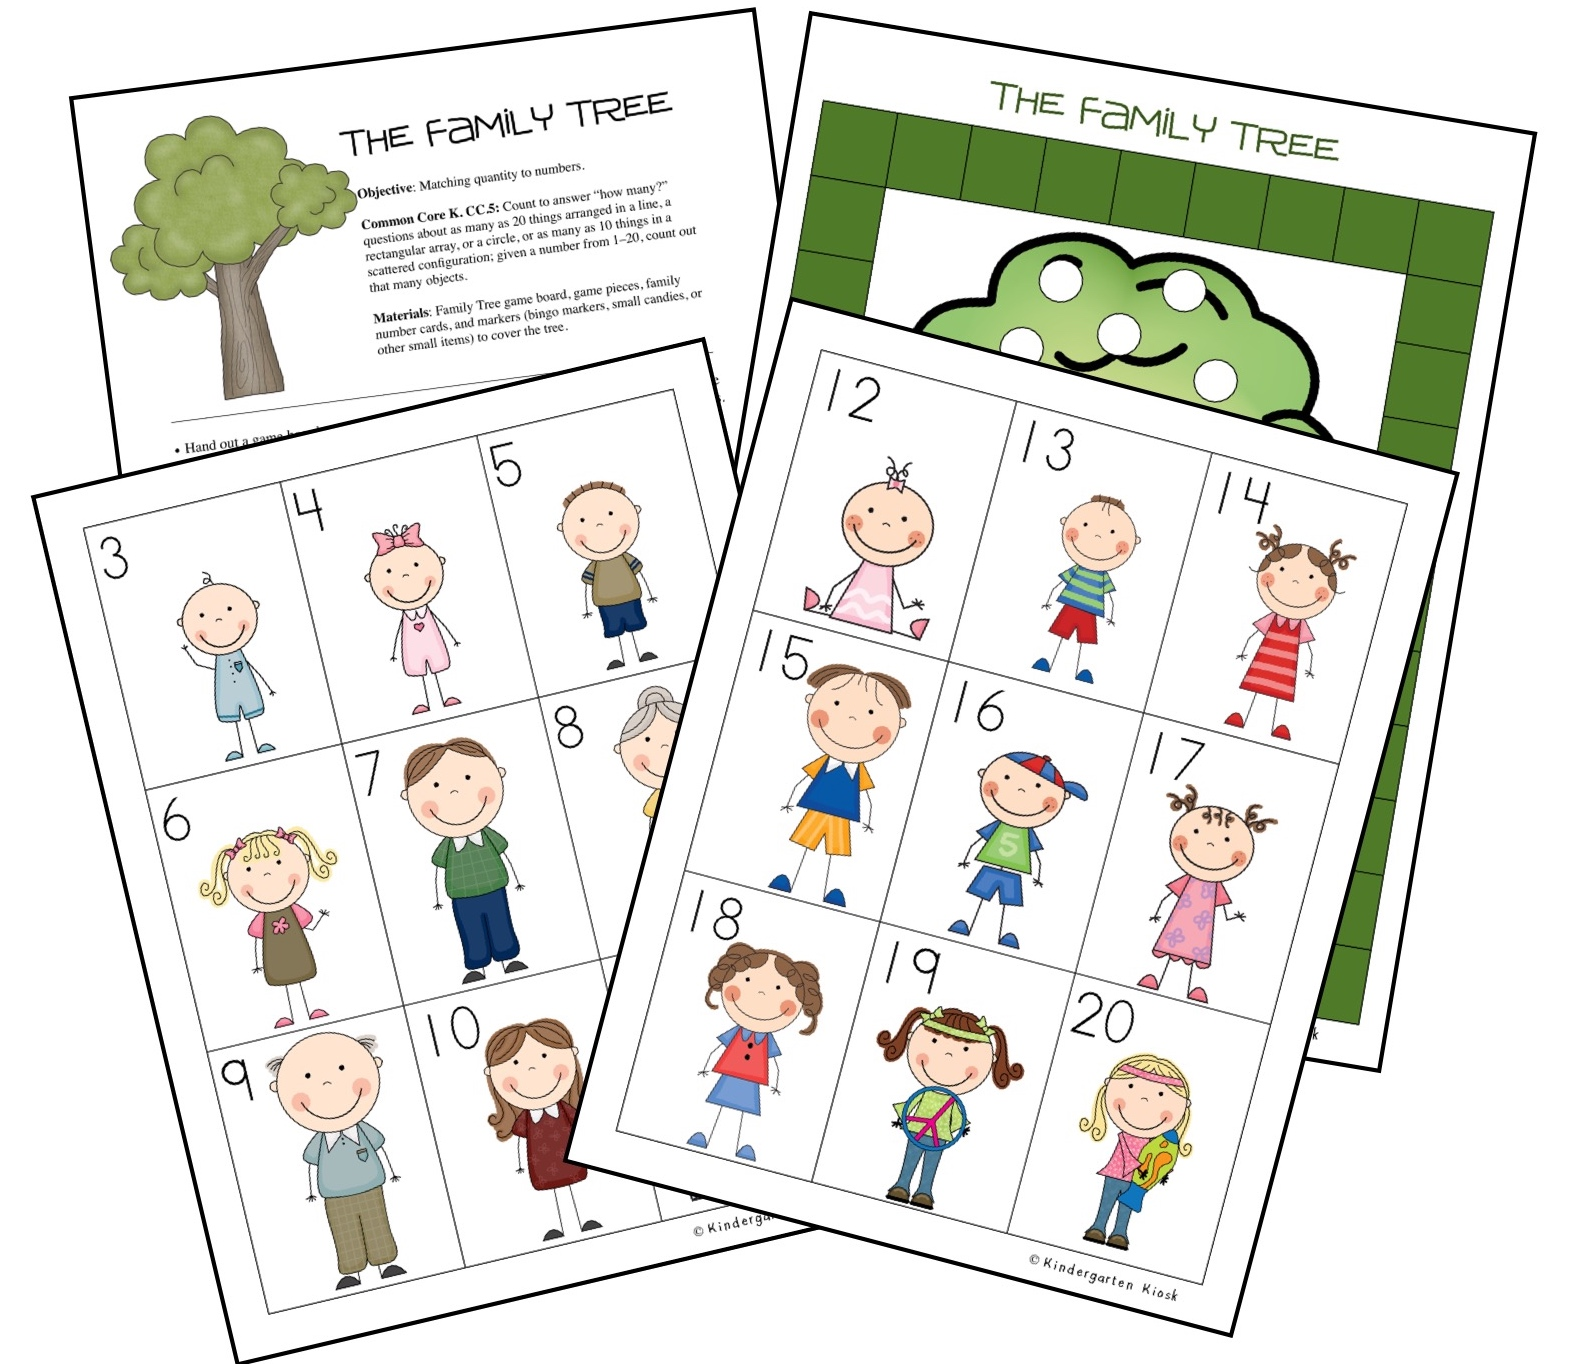 While playing The Family Tree, students are asked to match quantity and numbers up to 20.